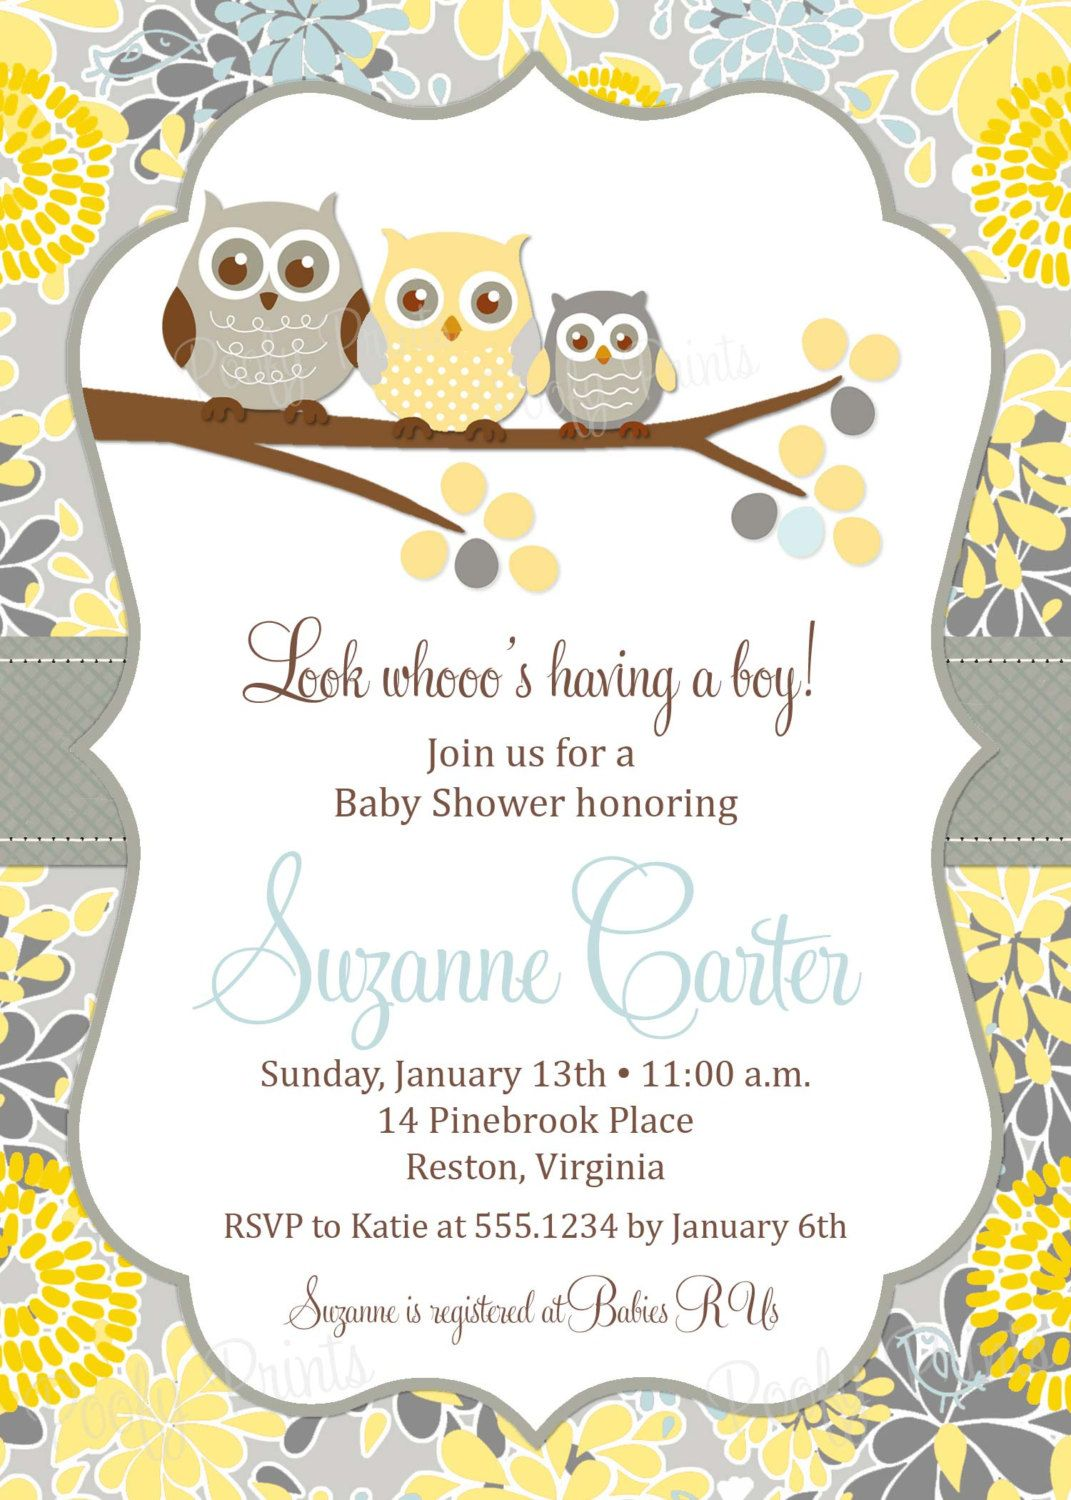 Owl Baby Shower Invitations   DIY Printable Baby Boy Shower Invitations    FREE Favor Tags Included  Free Baby Shower Invitation Templates Printable